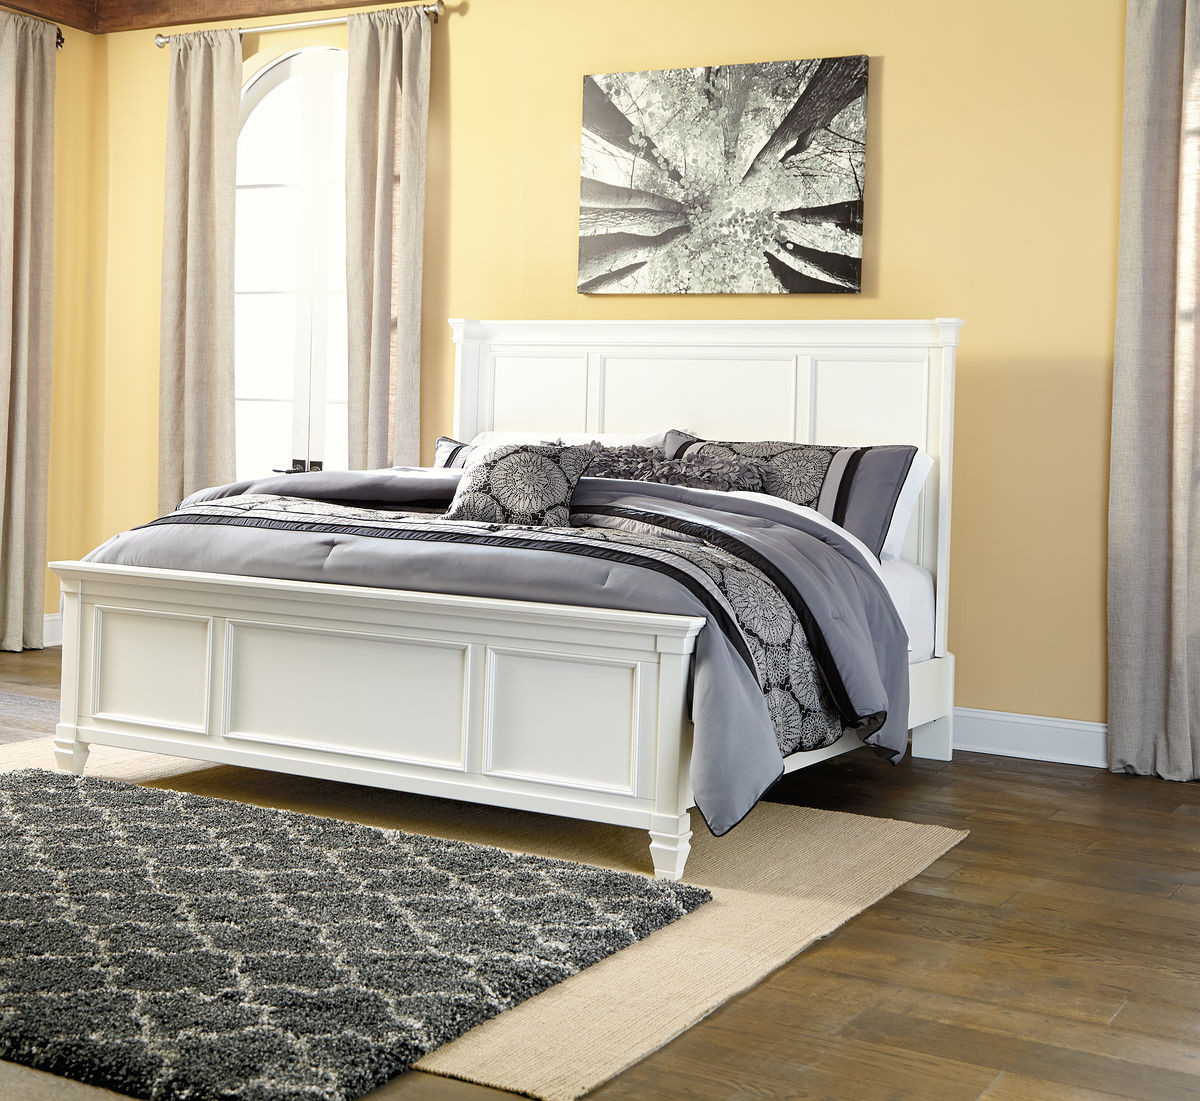 Ashley Furniture Goldsboro Nc: Ashley Prentice White King Panel Bed On Sale At Red Shed